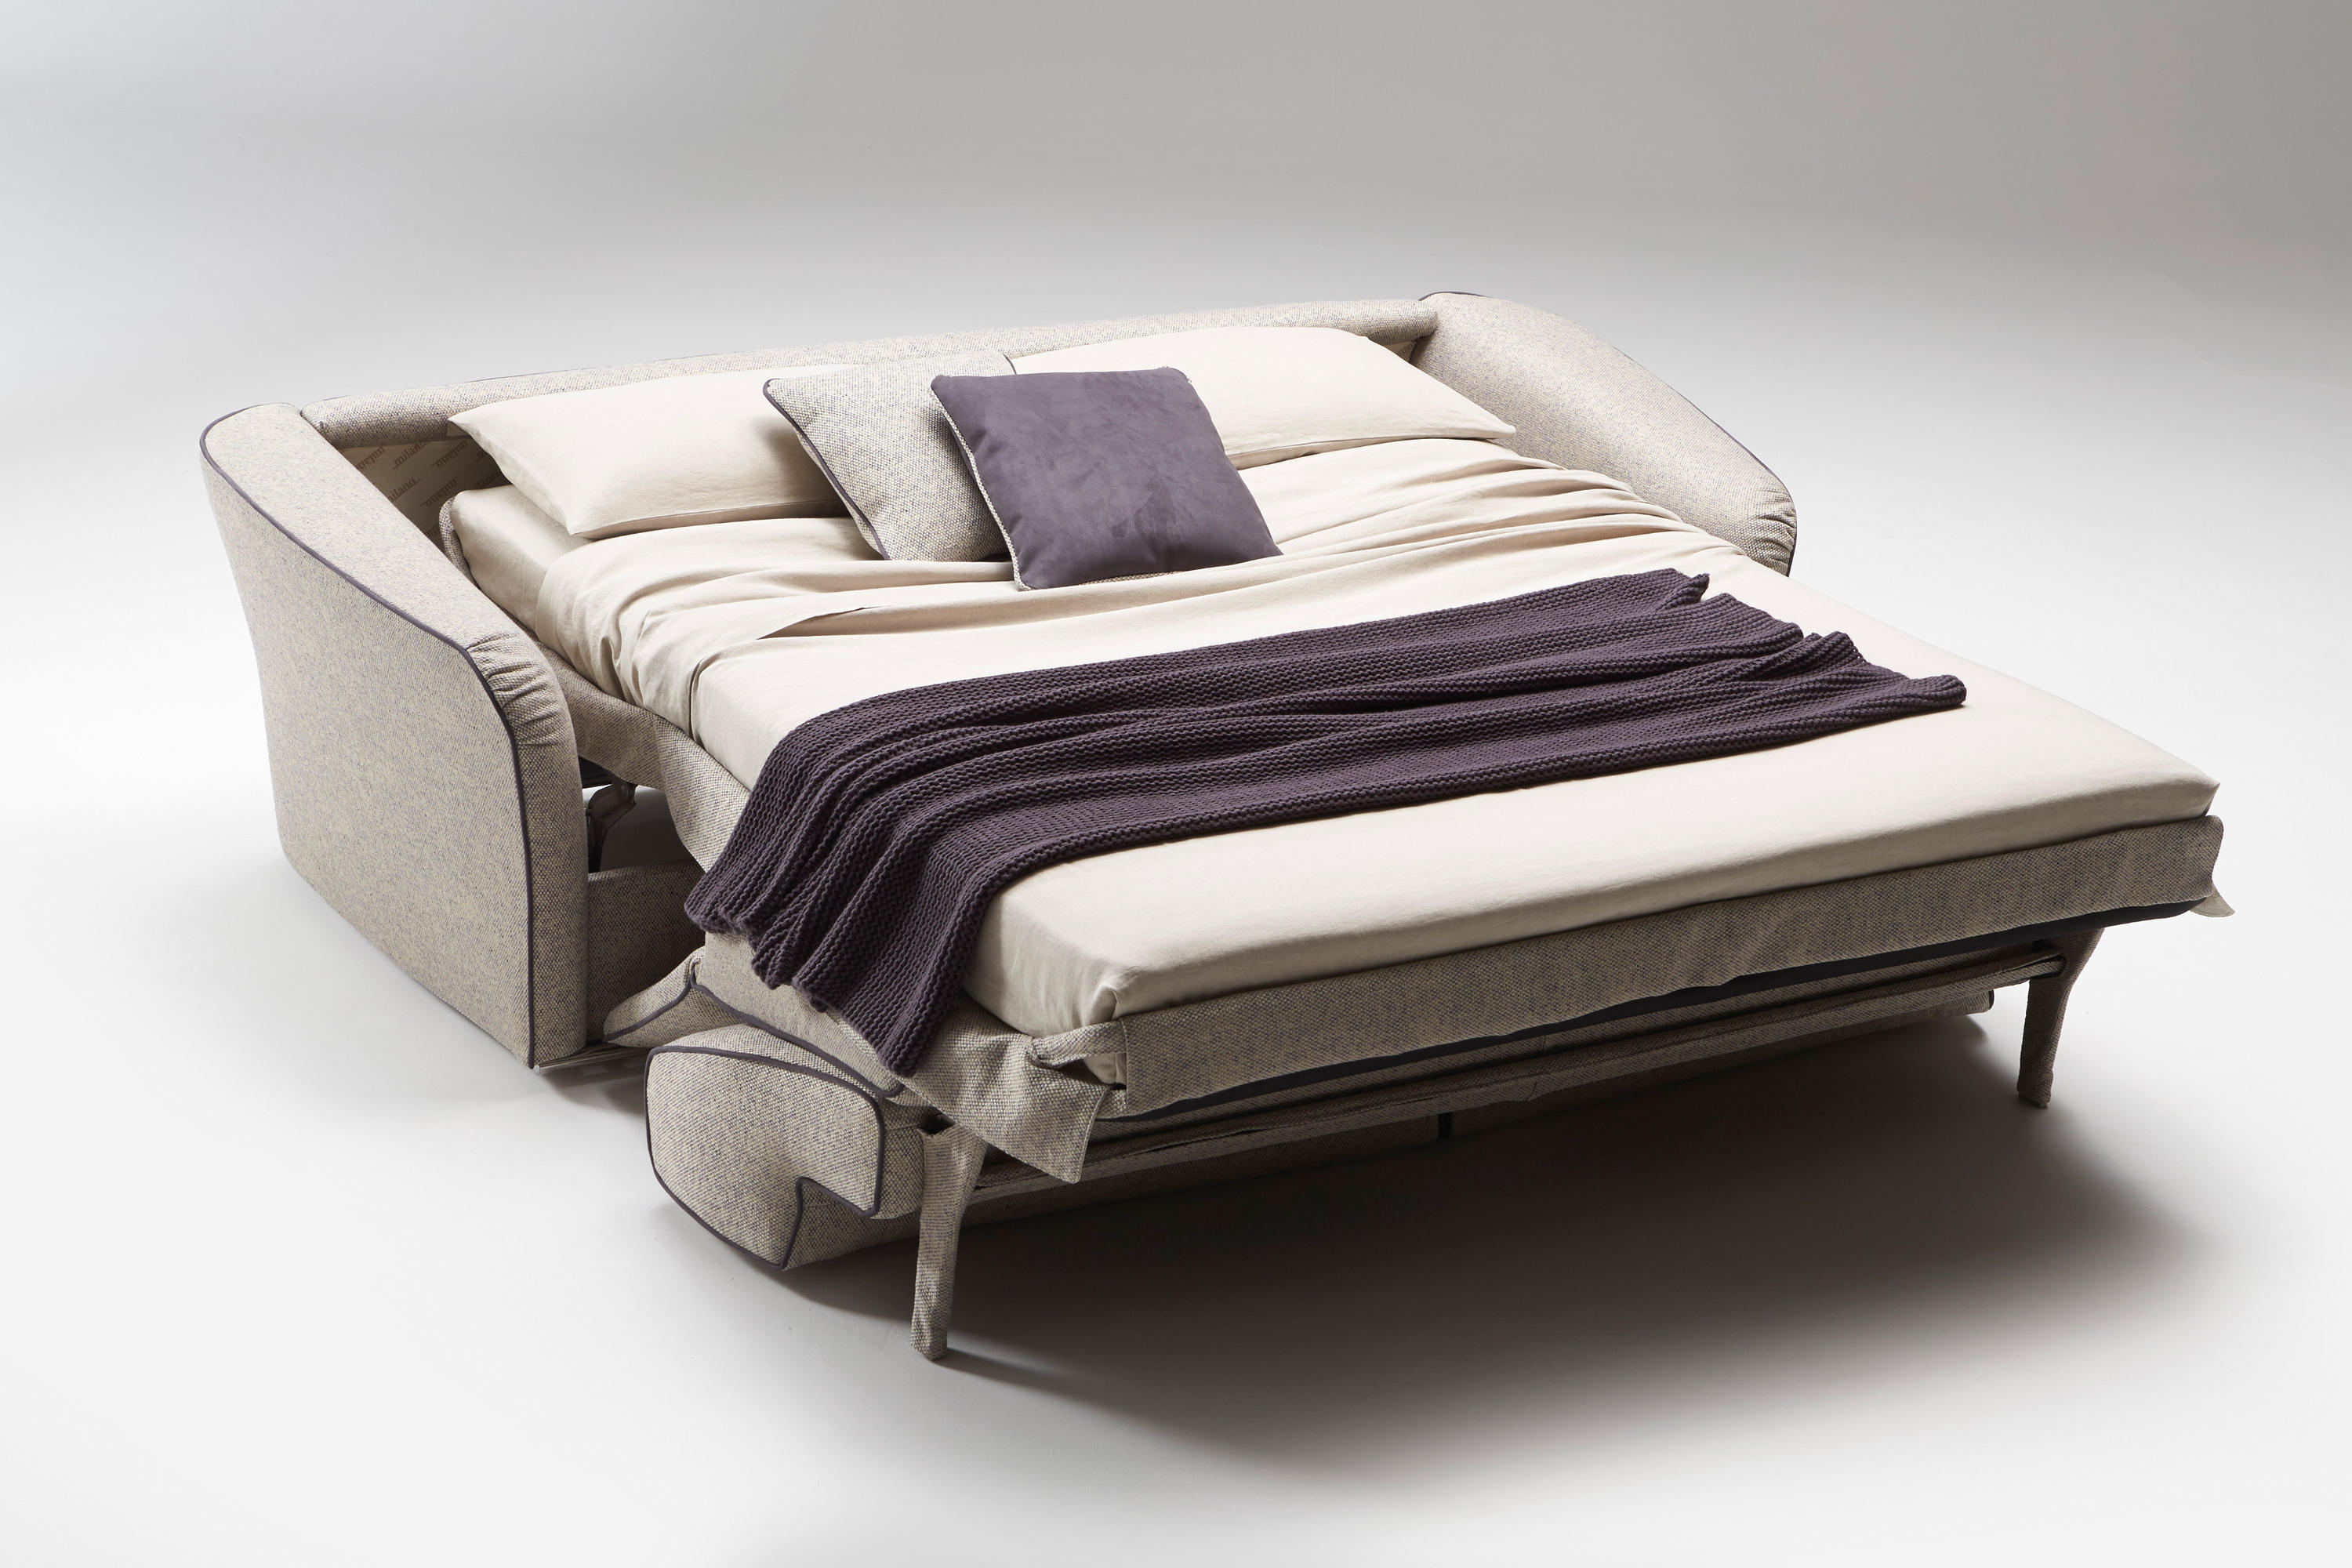 Milano Bedroom Furniture Groove Sofa Beds From Milano Bedding Architonic